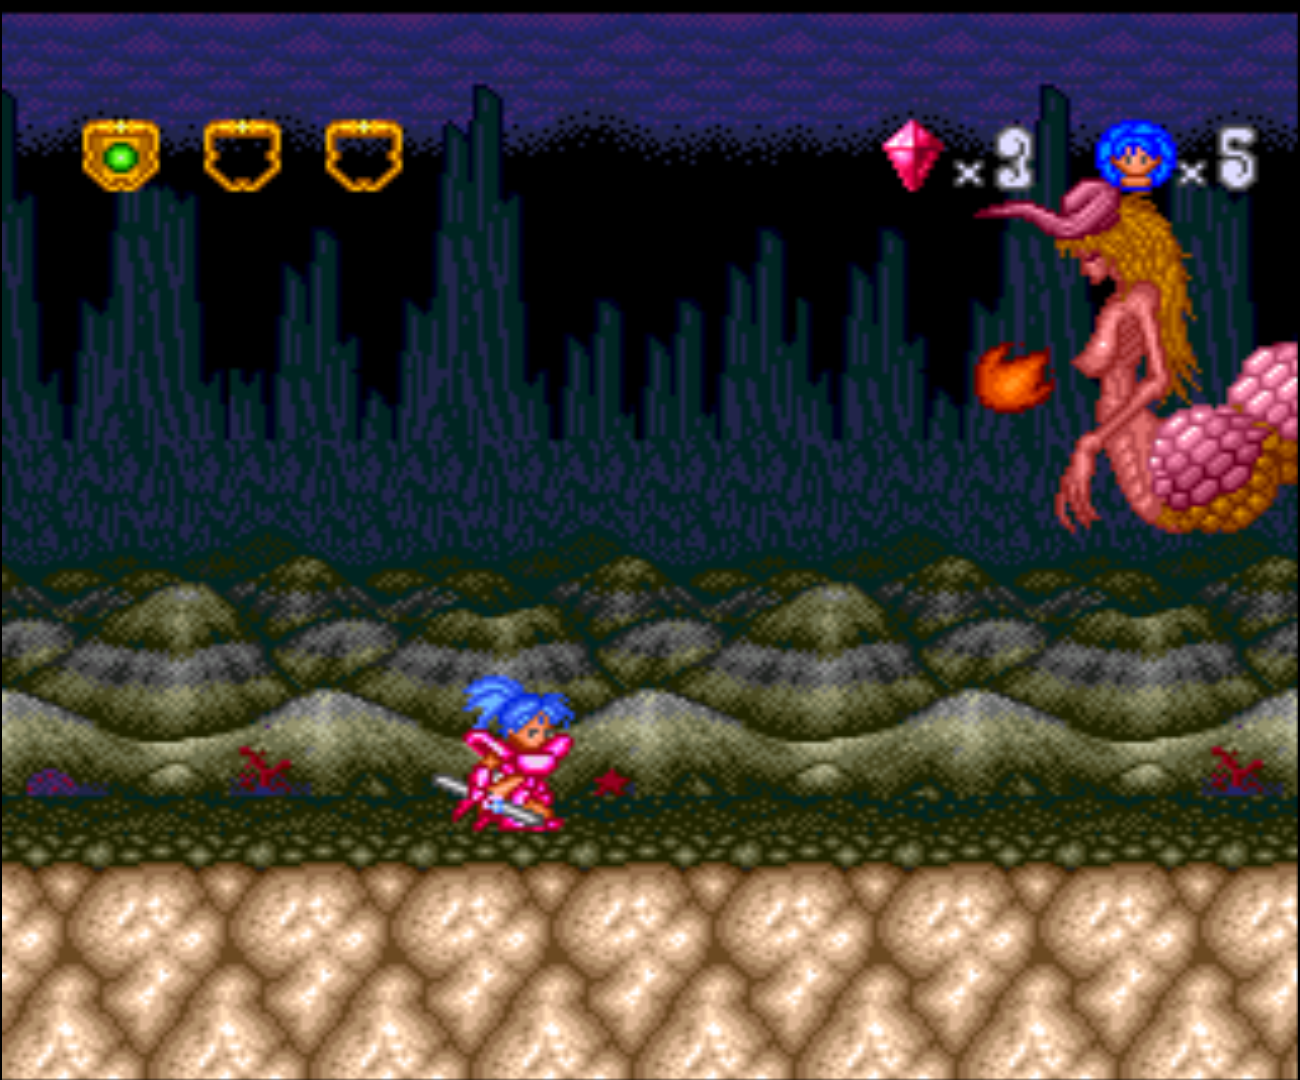 Figure 13 - One of the boss monsters in the game. Most of them can only be beaten with special attacks